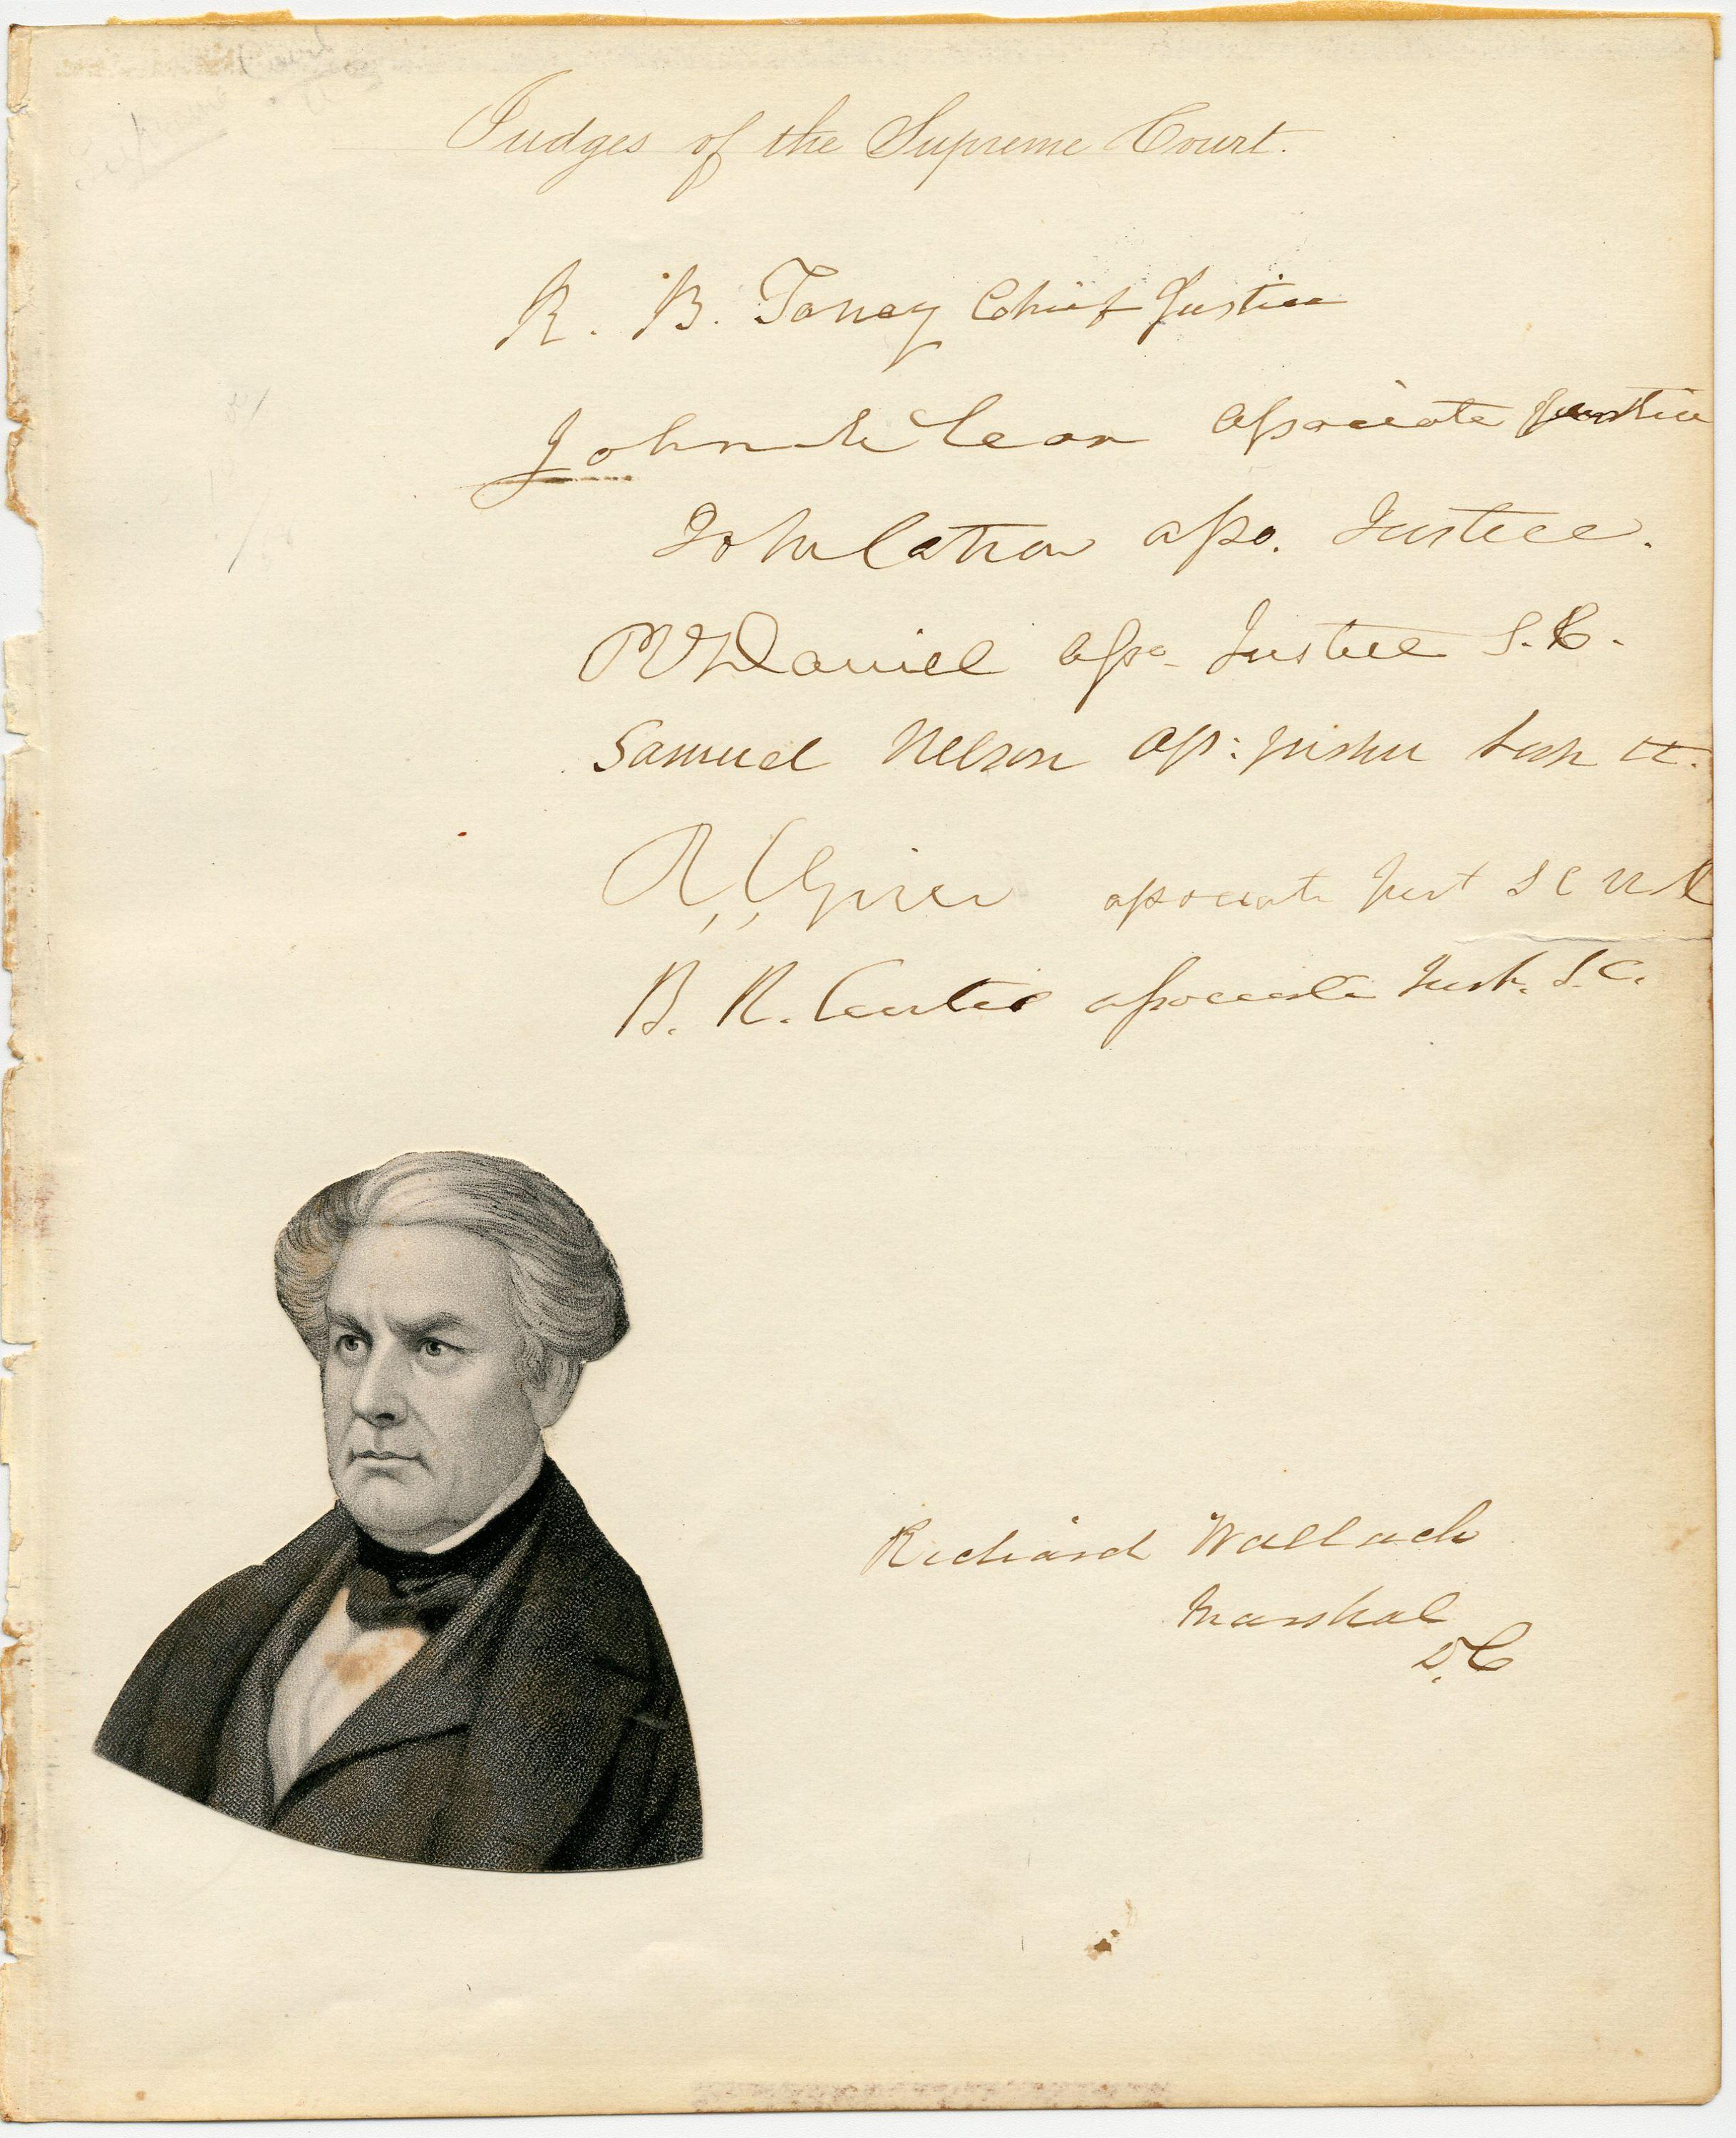 Signatures of 7 of 9 S.C. Justices of the Taney Court -- Uncommon!